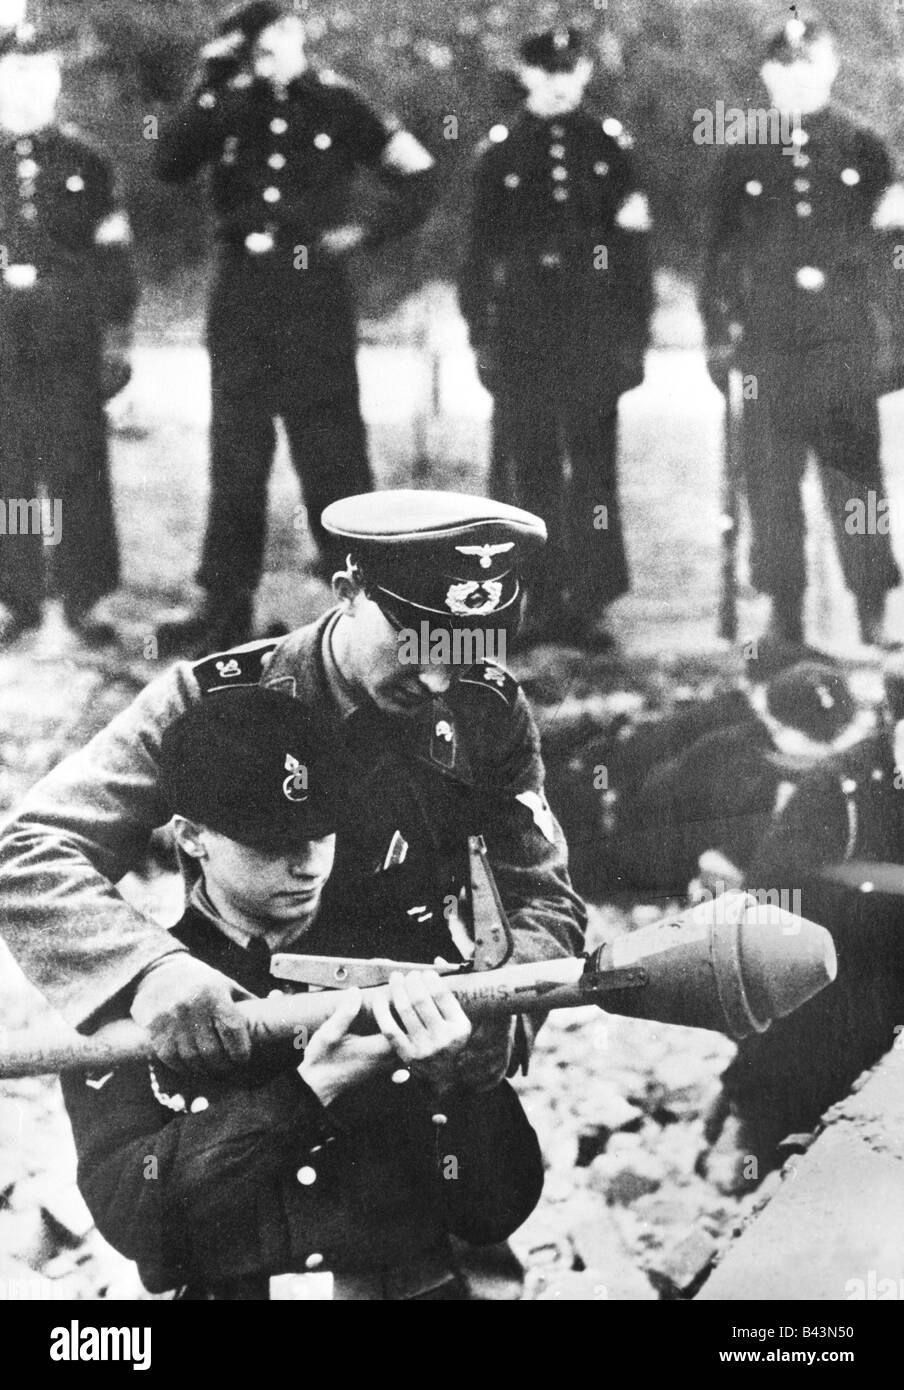 a paper on germanys battles in wwii Wwii possible essay questions the internment of japanese americans during wwii was a highly controversial action by the us describe germany's growing aggression leading up to appeasement b why was germany allowed to annex the sudetenland.